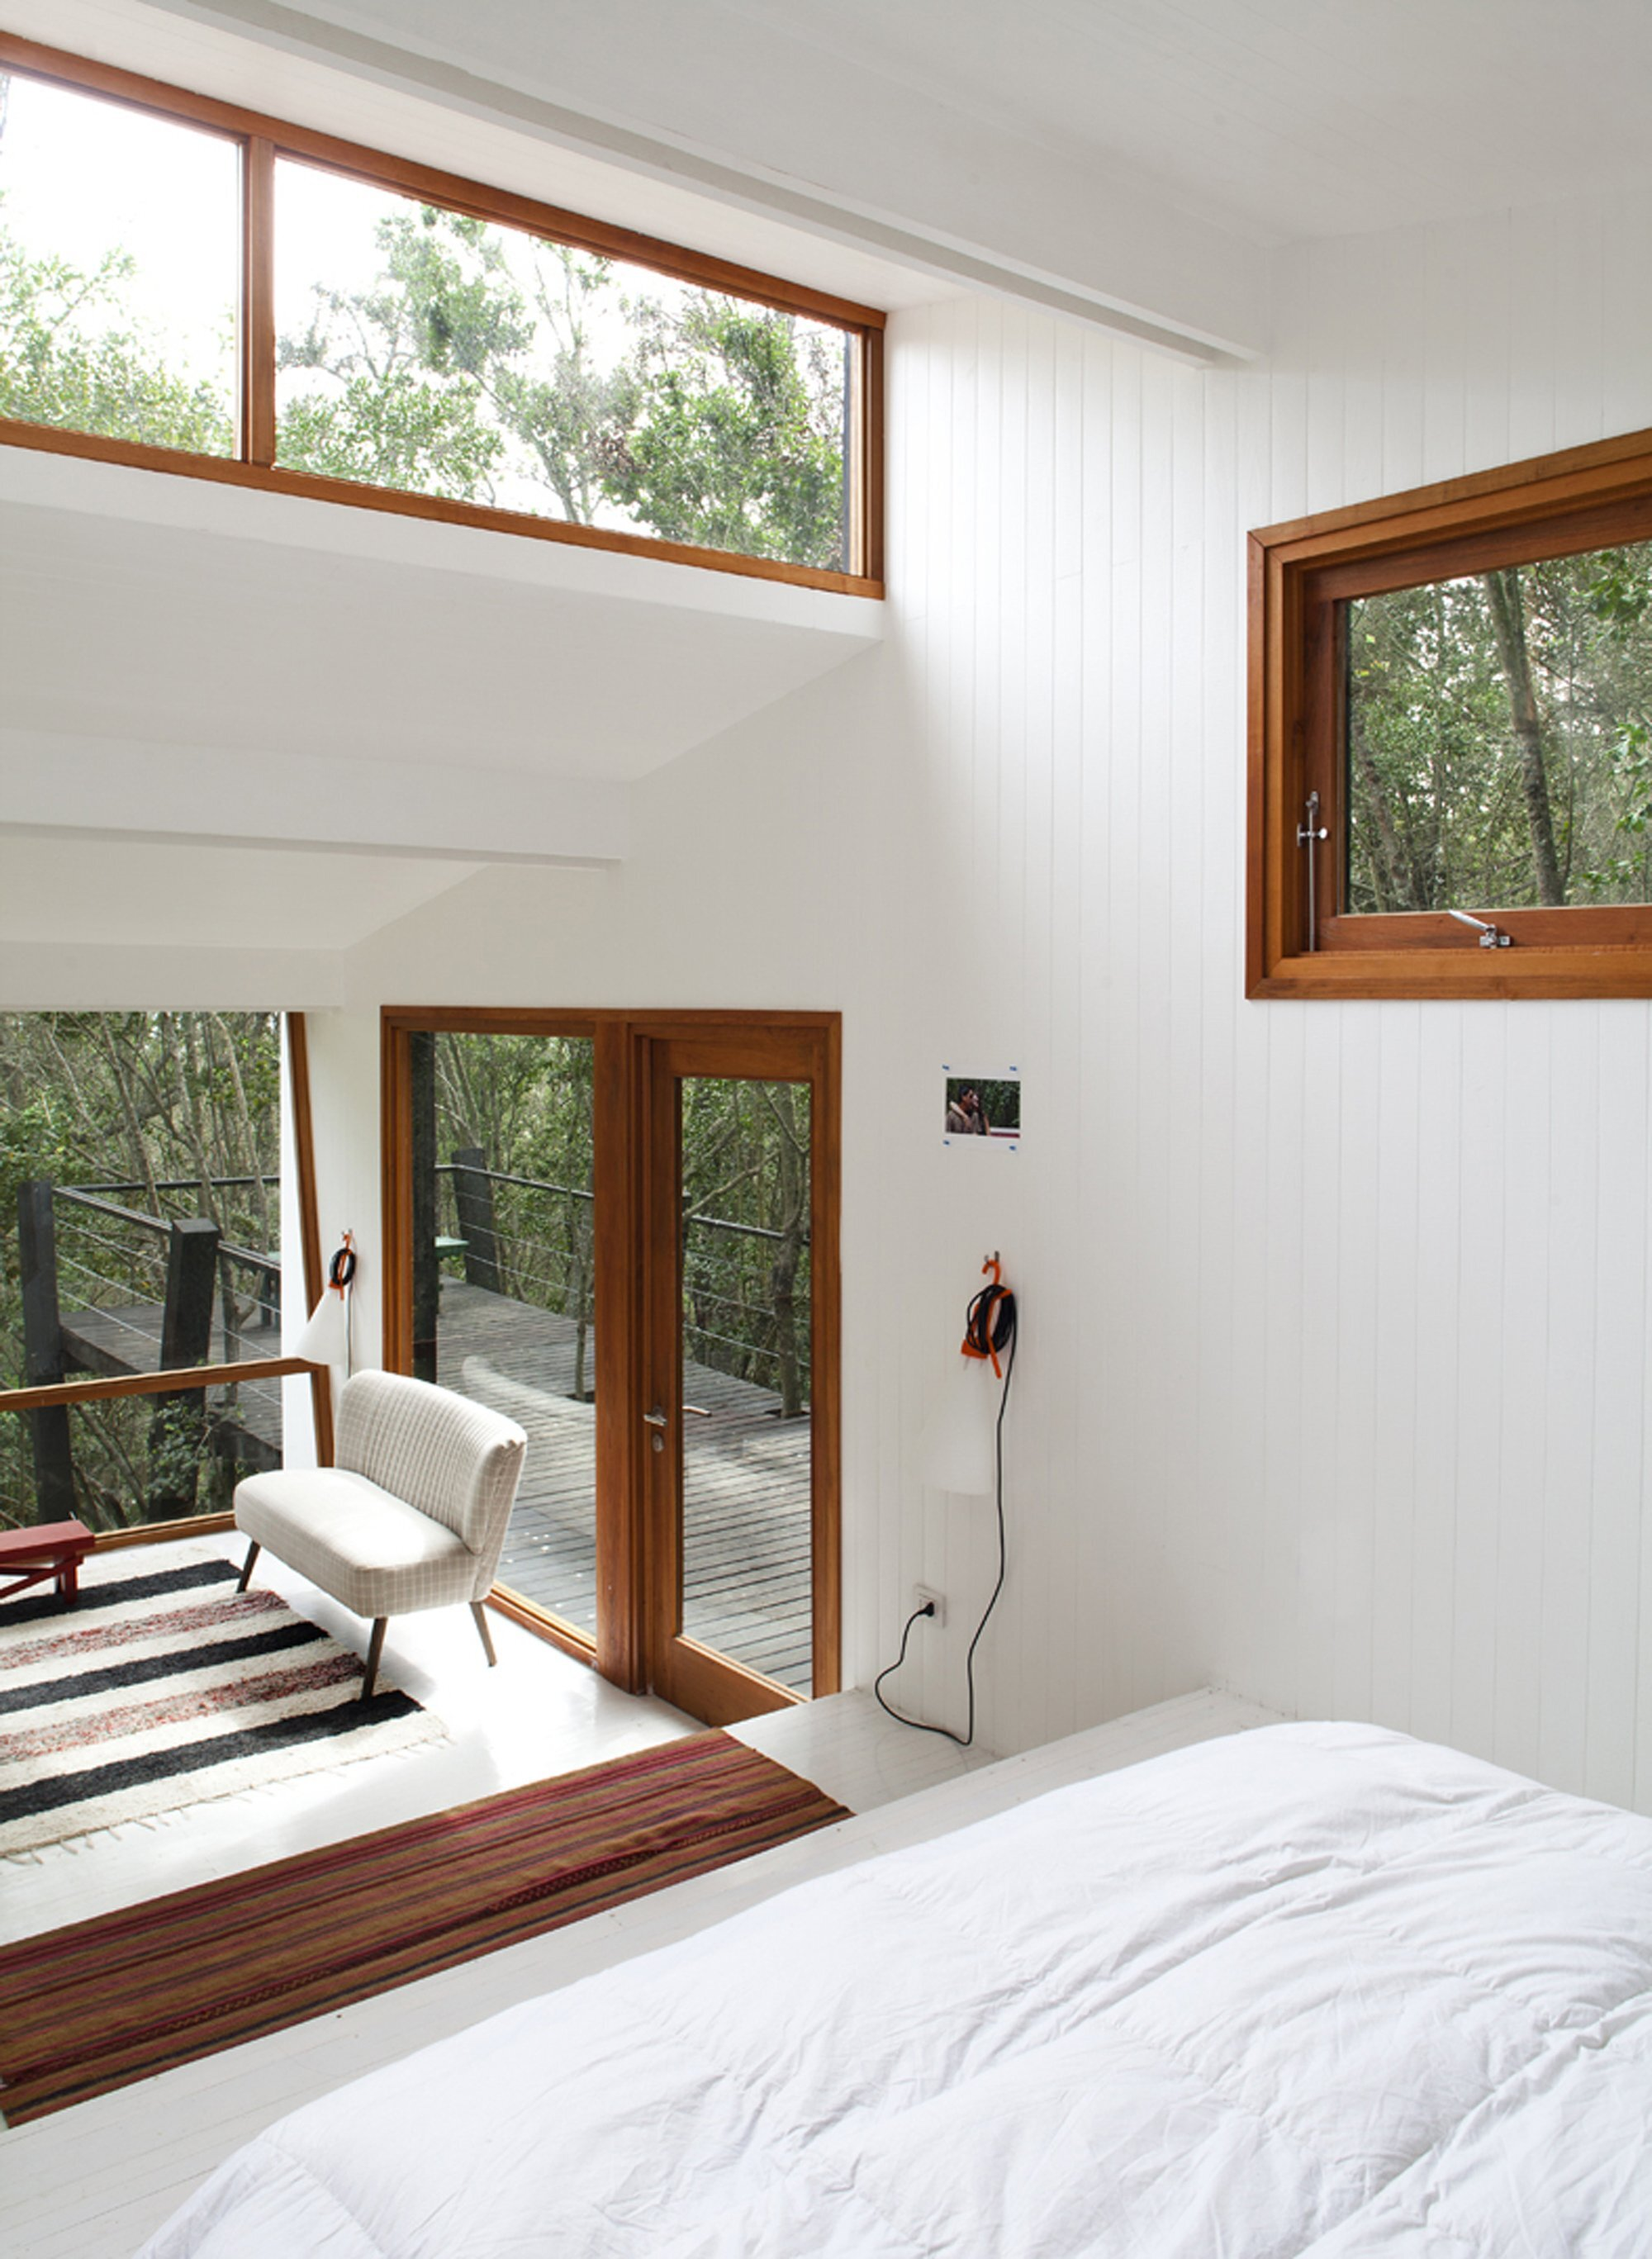 Quebrada House - UNarquitectura - Small House in Chile - View from Bedroom - Humble Homes